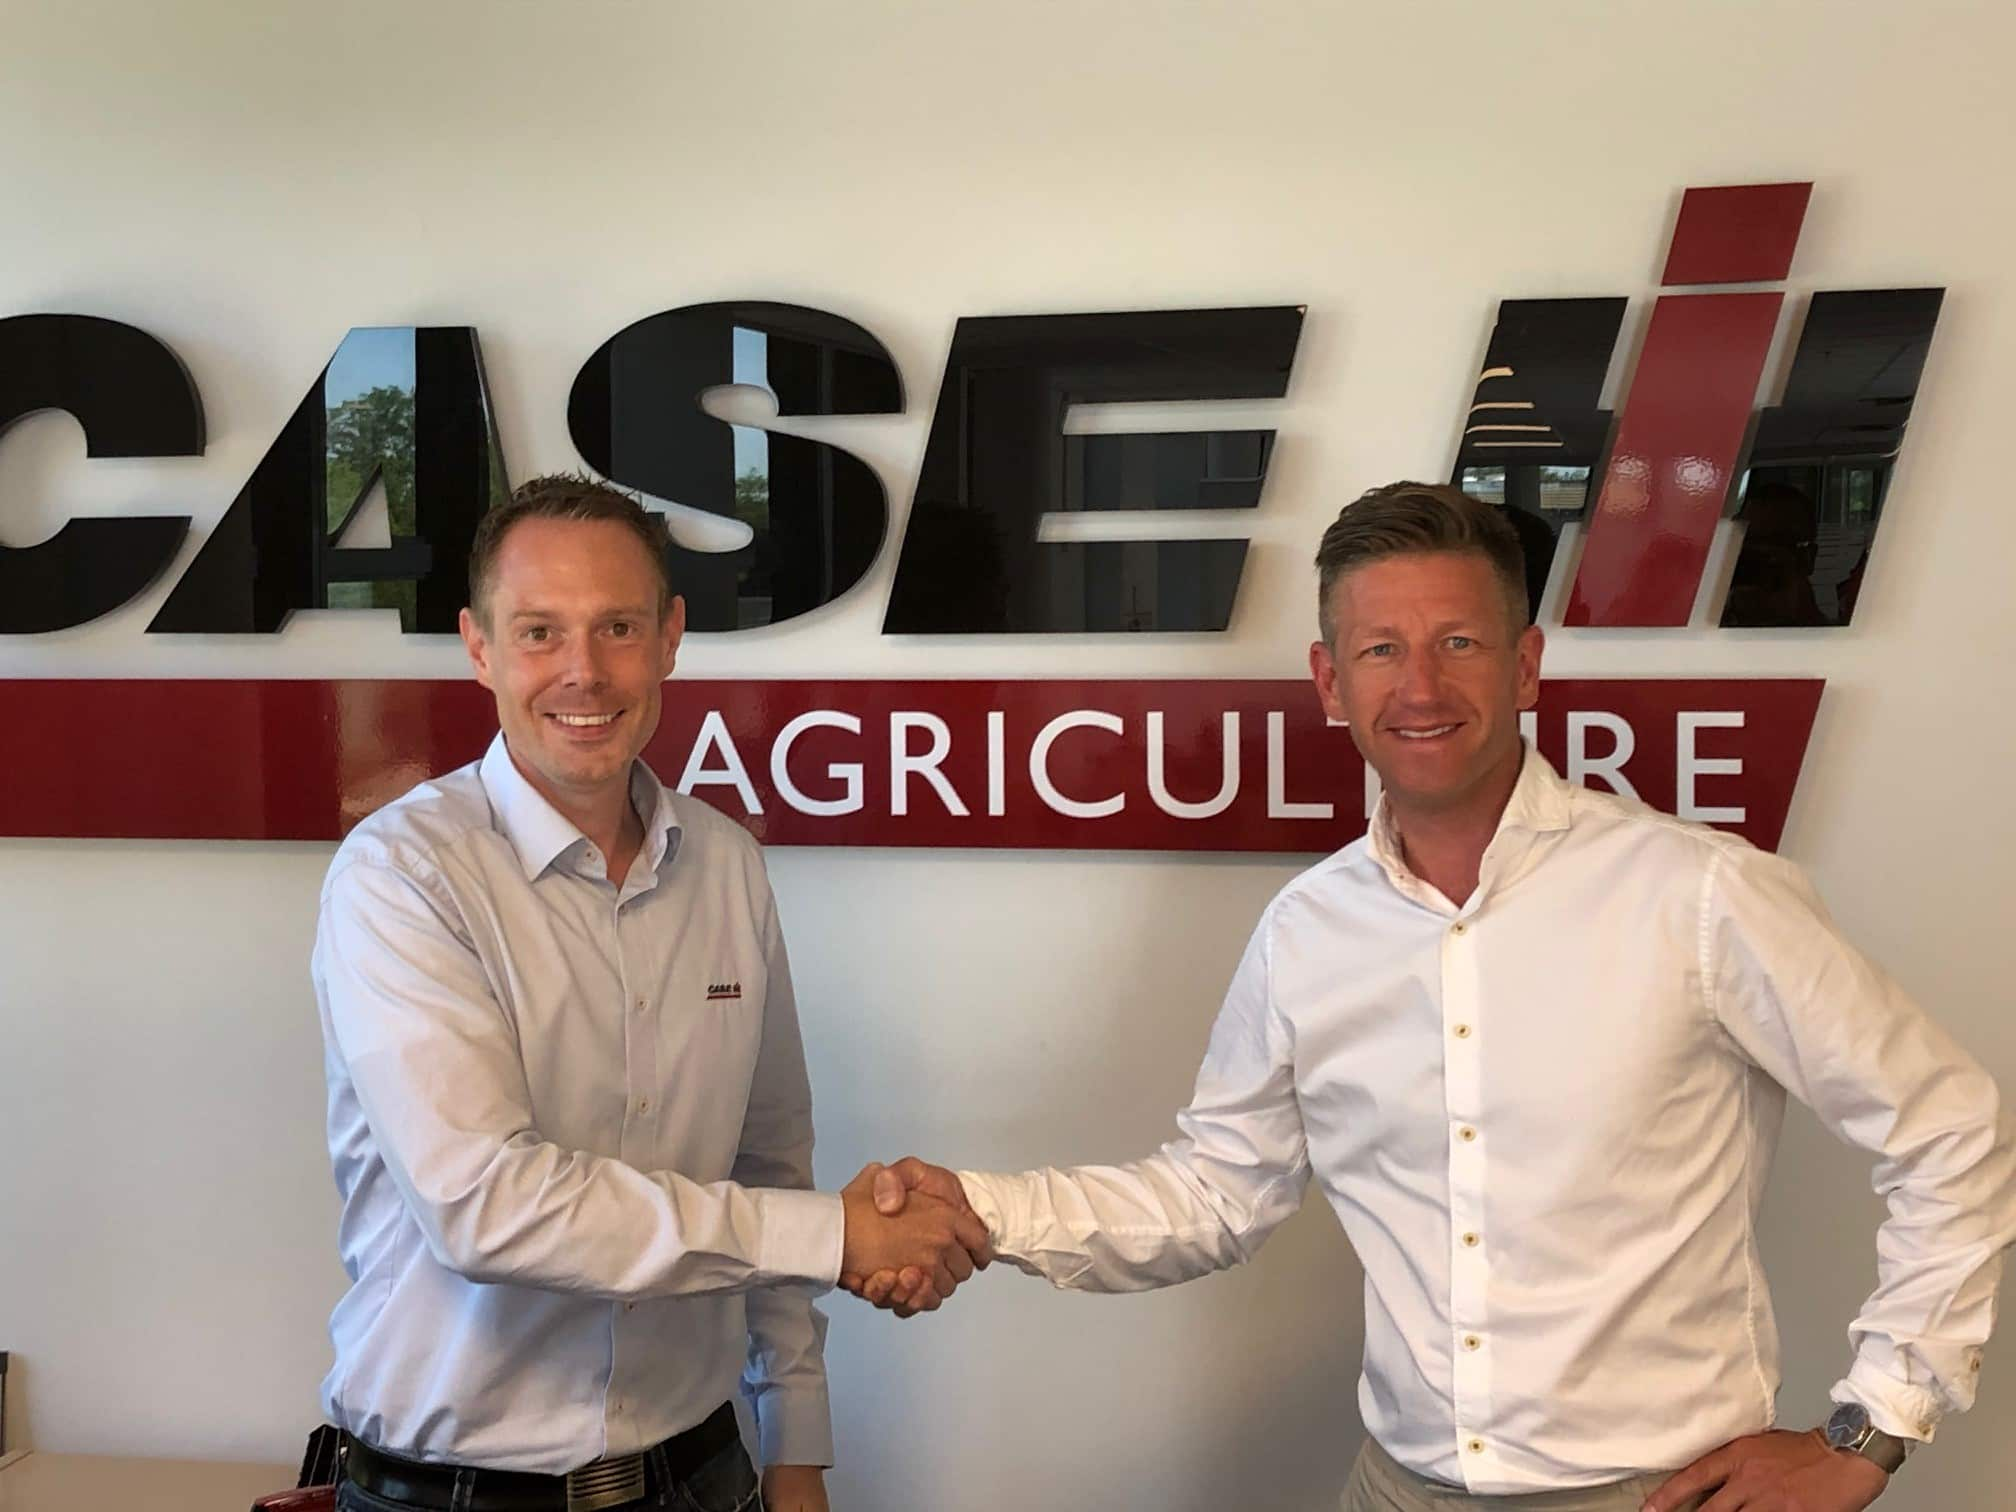 Ny Marketing Manager og ny Distriktschef hos Case IH